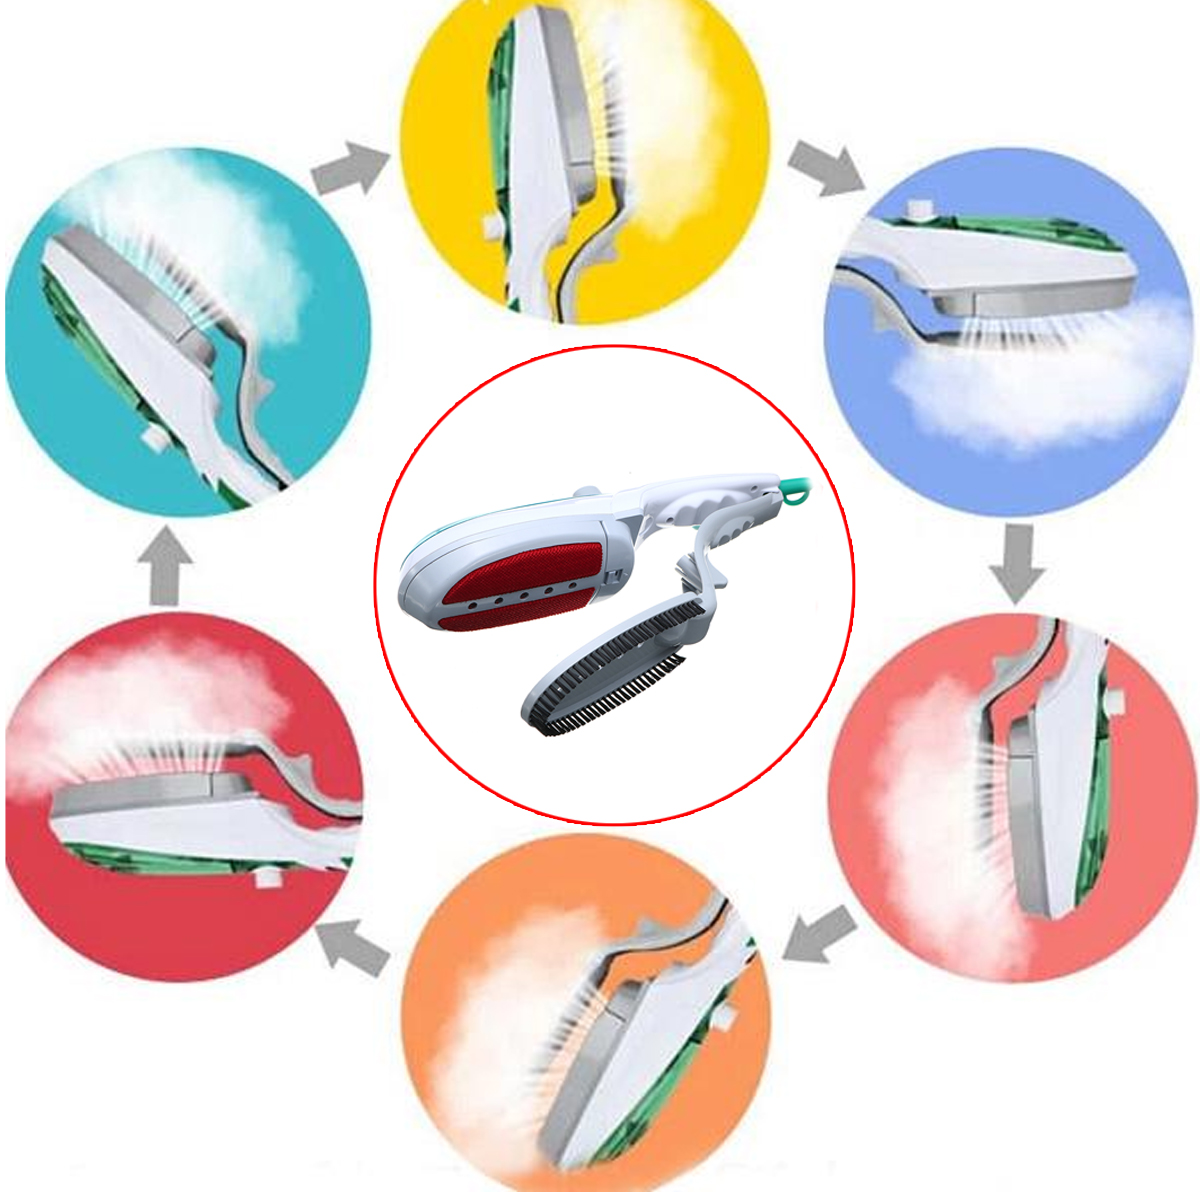 650W Portable Travel Handheld Garment Clothes Iron Electric Brush Remove Steamer